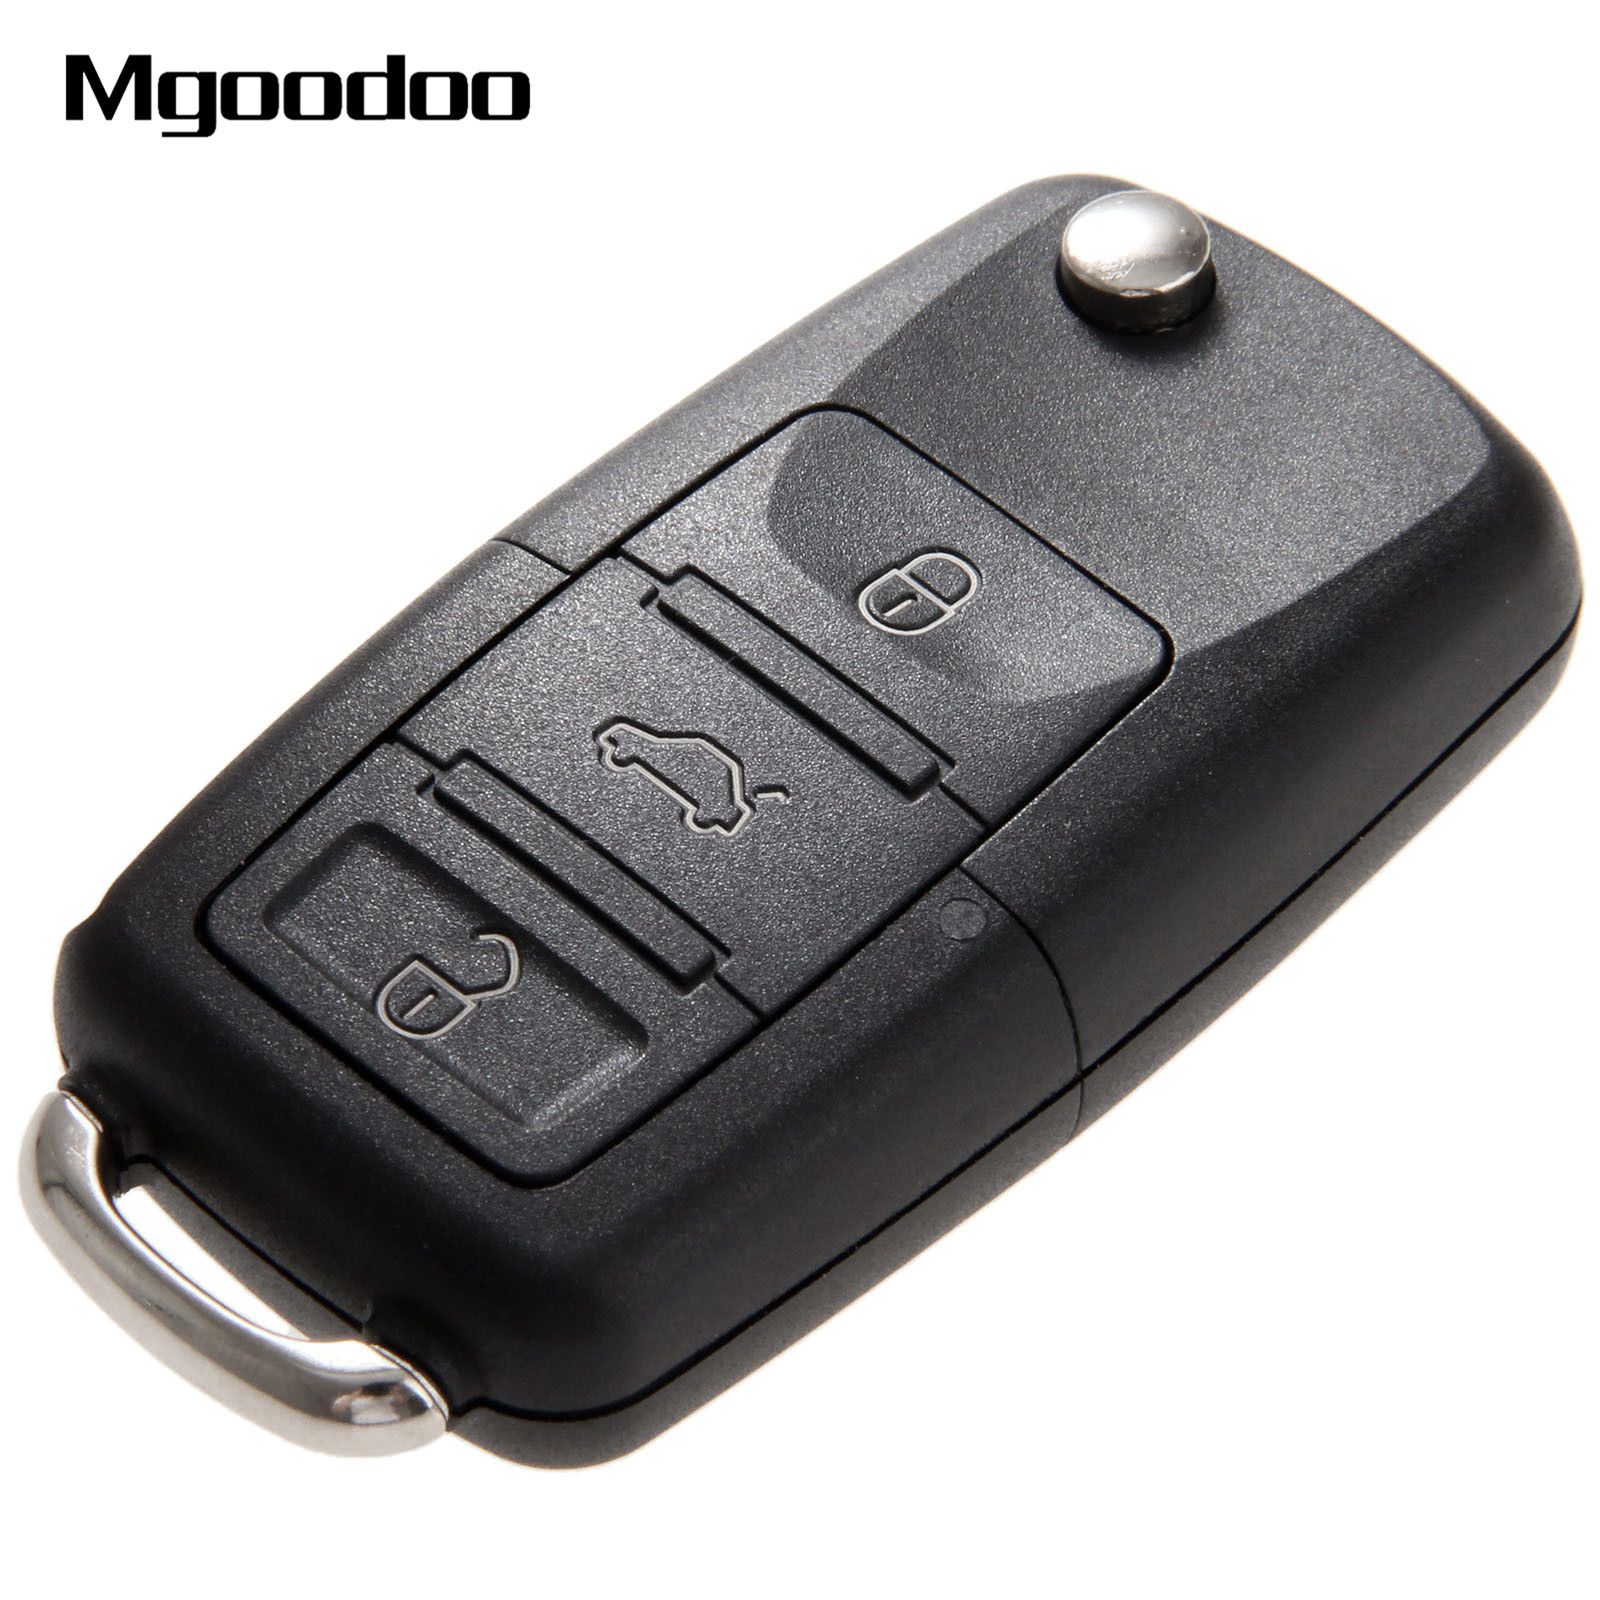 Mgoodoo Flip Folding Remote Car Key Shell Auto Replacement Key Case Covers Uncut Blade For VW Volkswagen Bora Golf MK4 2 Buttons in Car Key from Automobiles Motorcycles